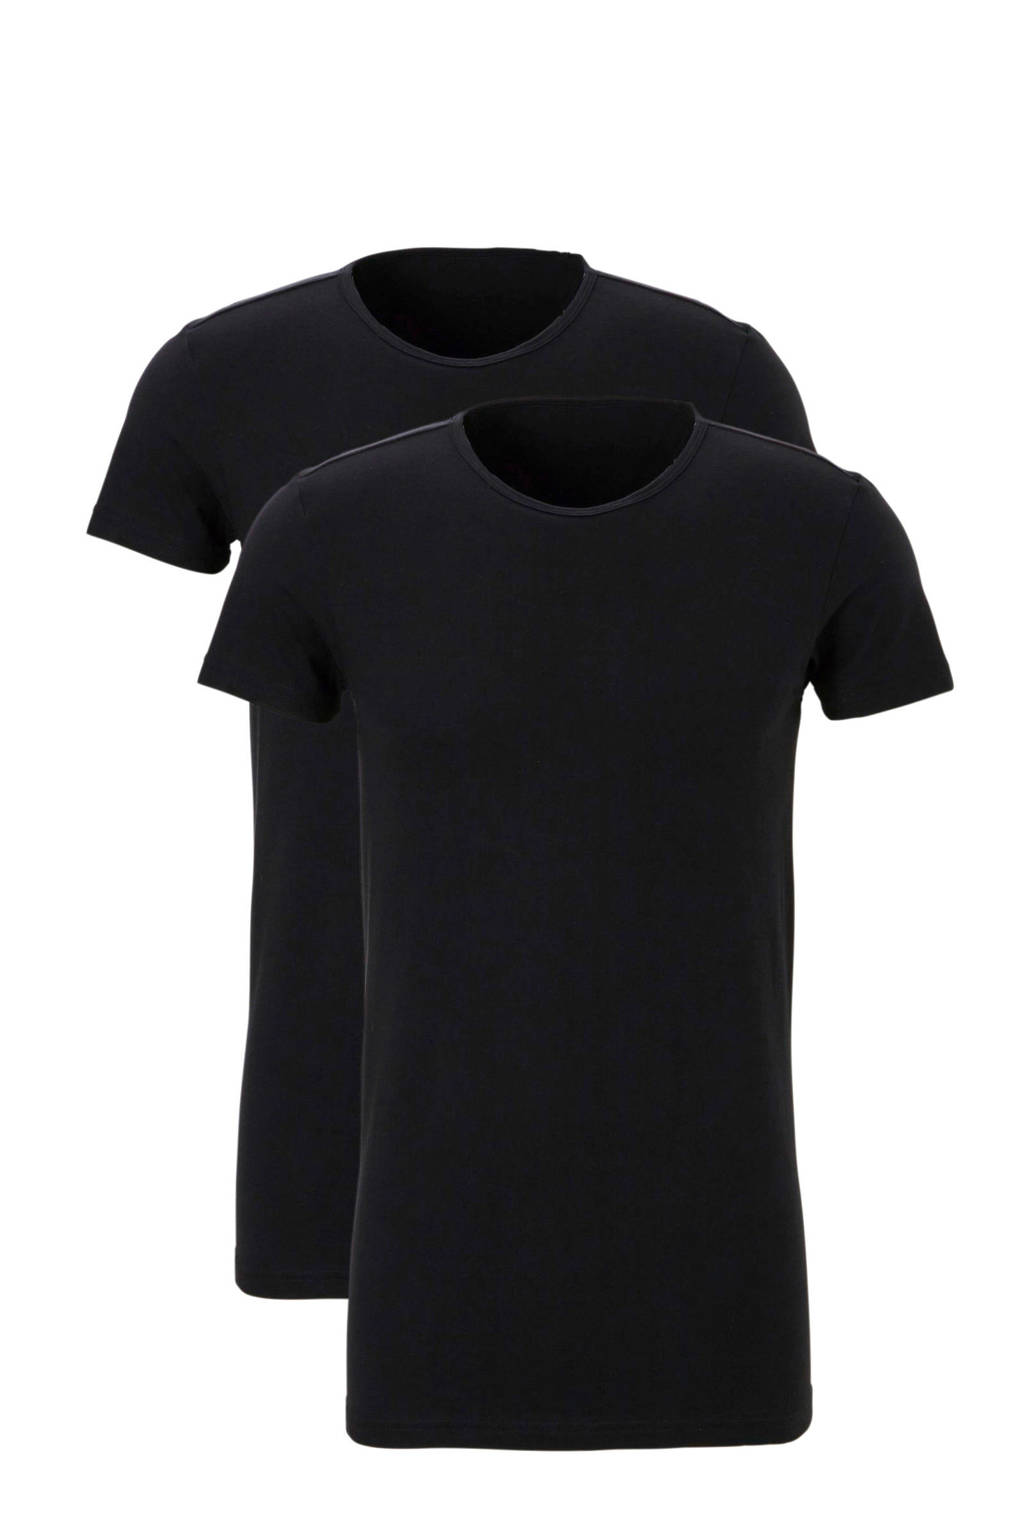 ten Cate T-shirt (set van 2) zwart, Zwart